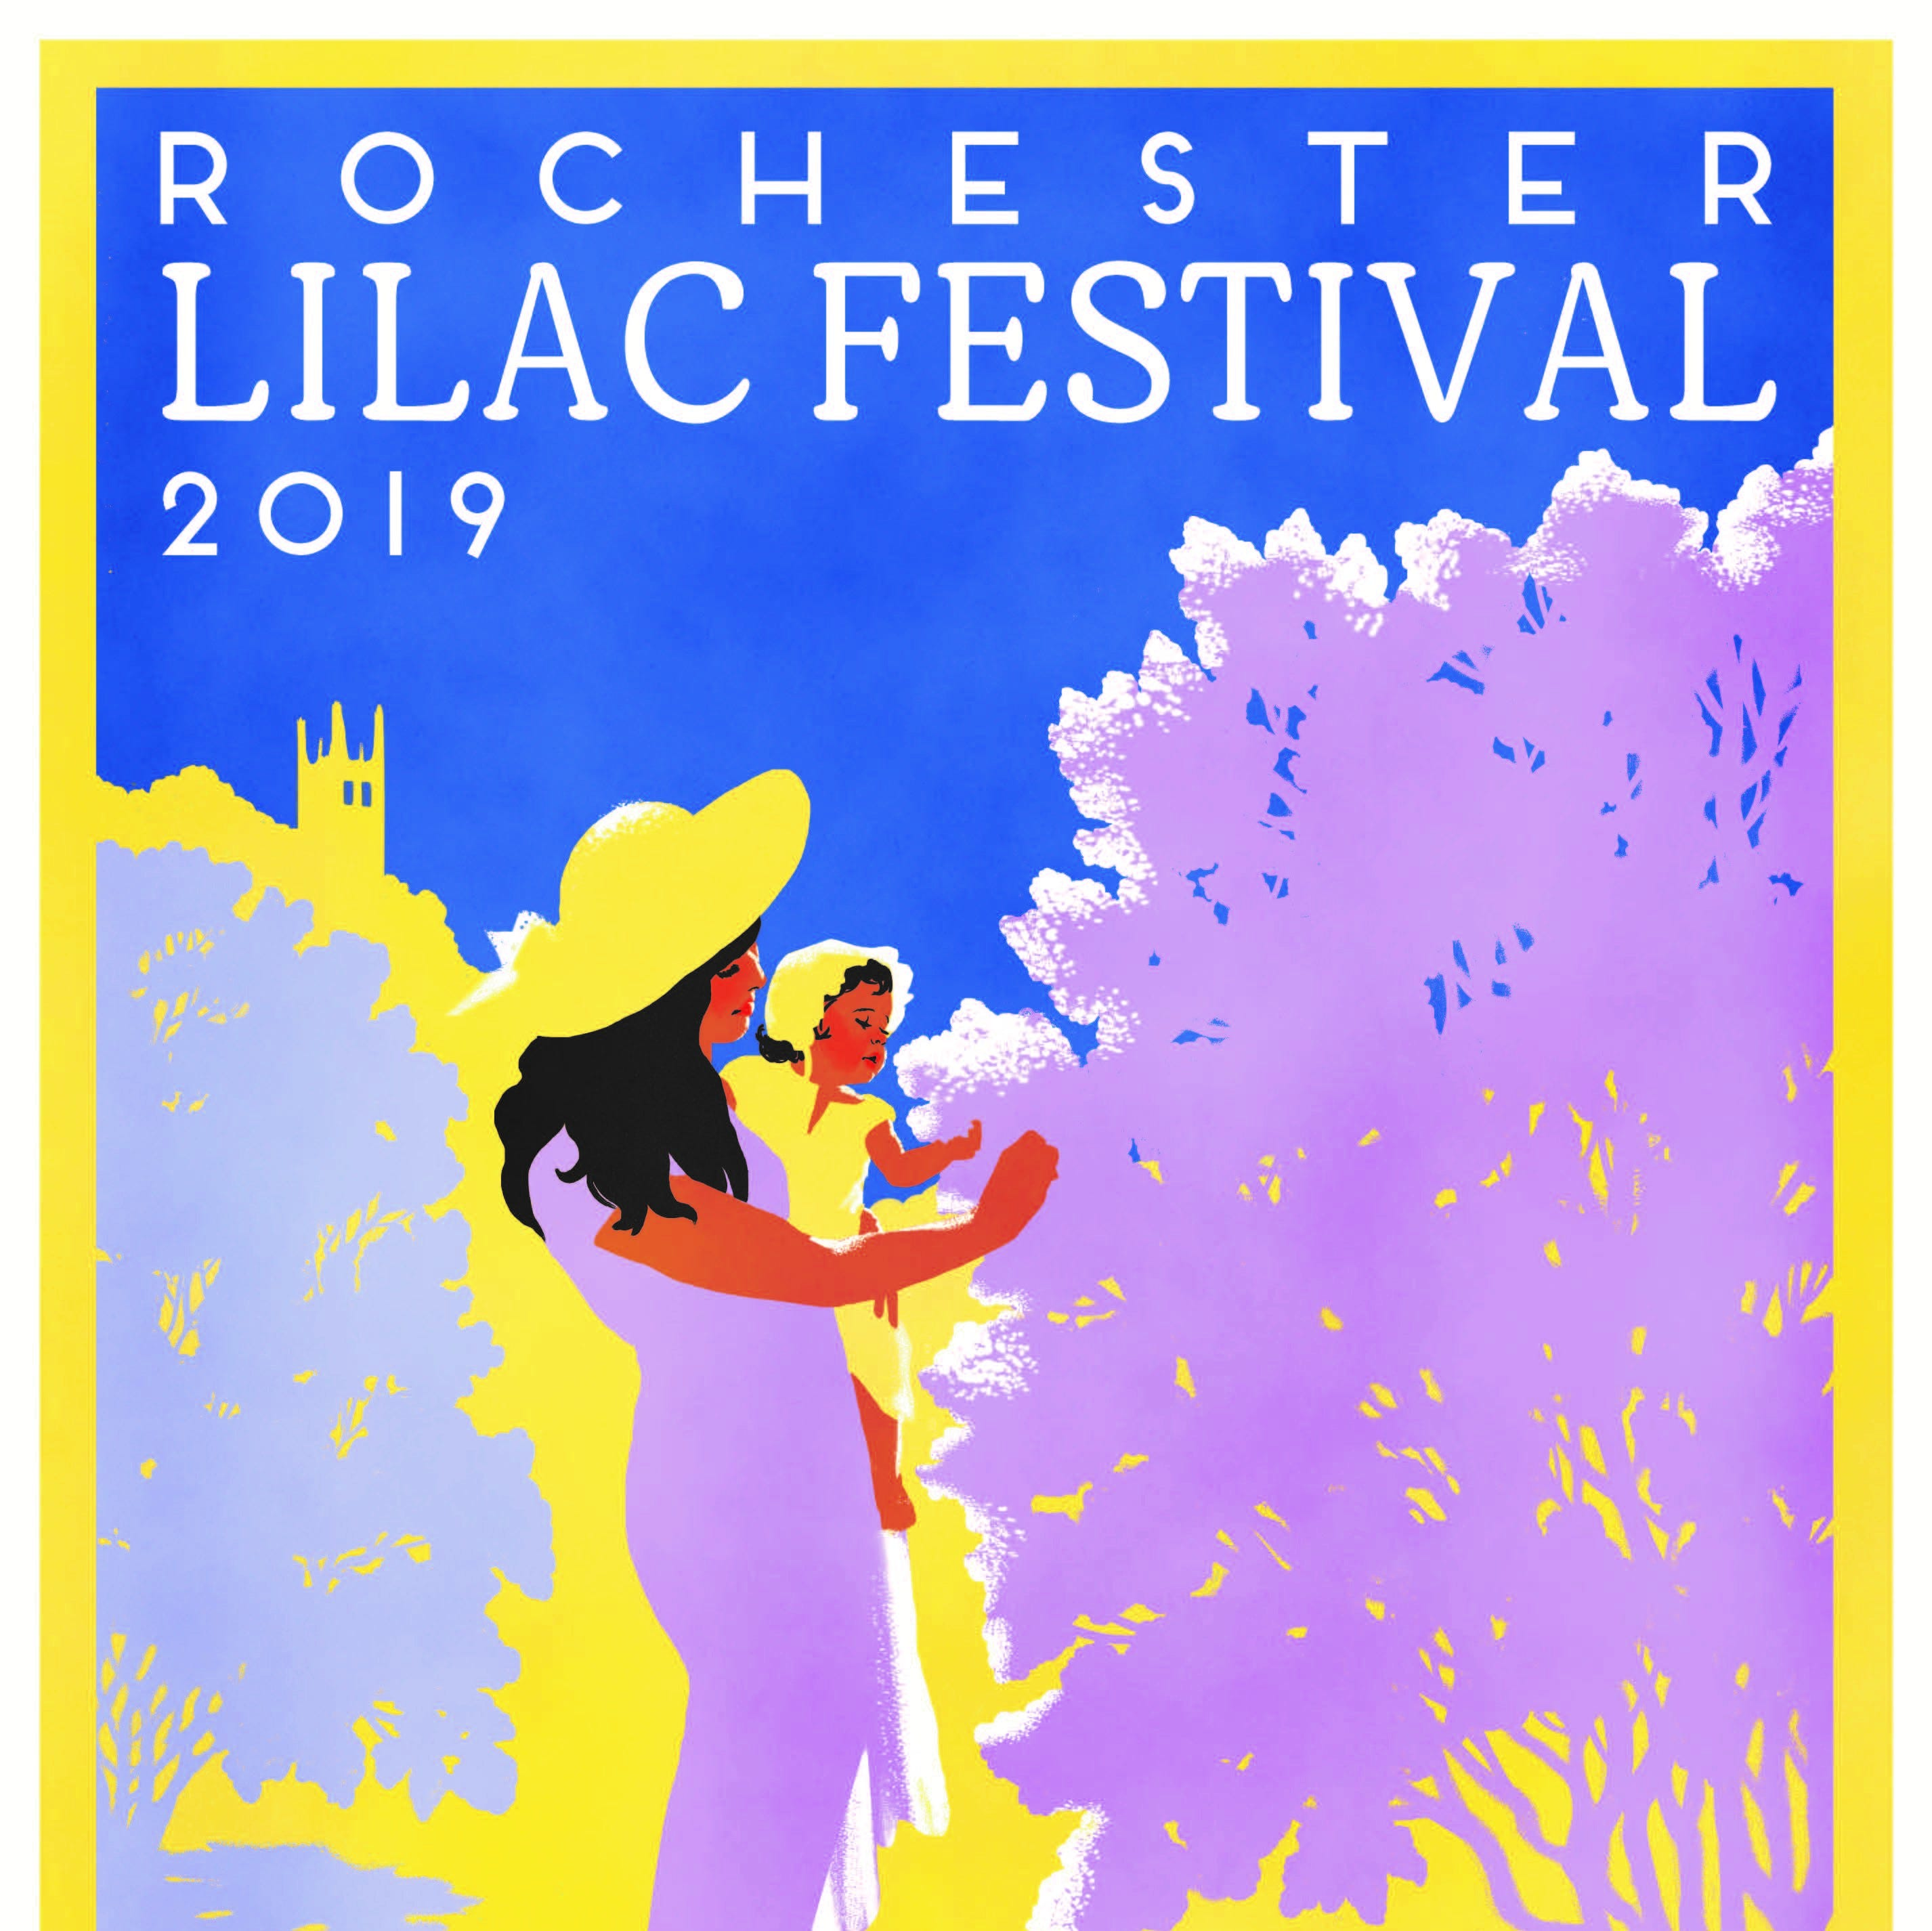 The 2019 Lilac Festival poster is unveiled